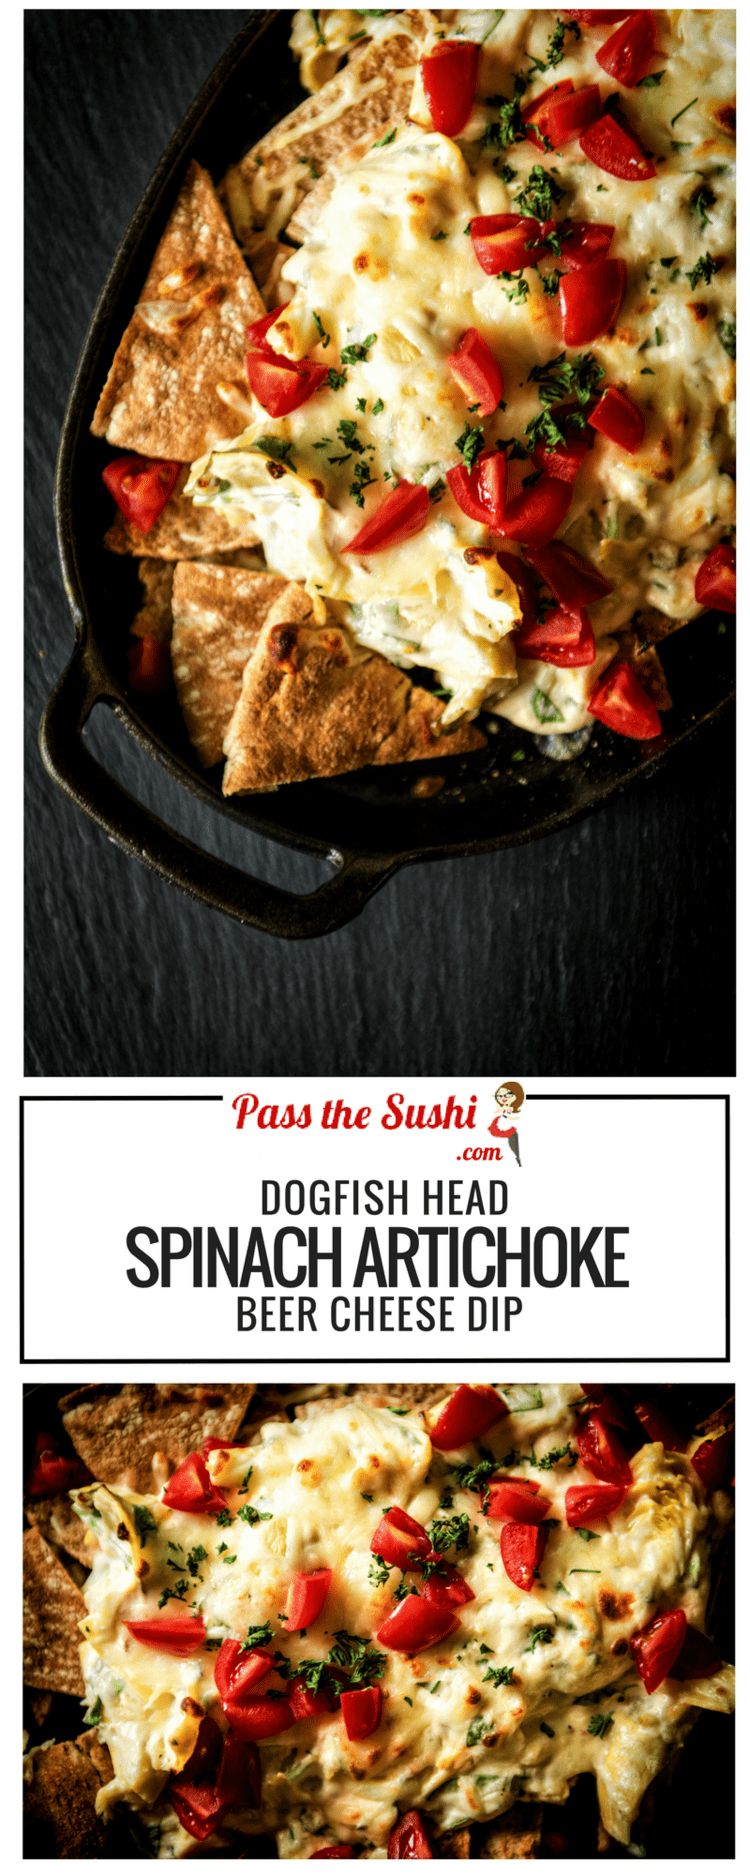 I LOVE this Dogfish Head Spinach Artichoke Beer Cheese Dip for parties! Full recipe on PasstheSushi.com